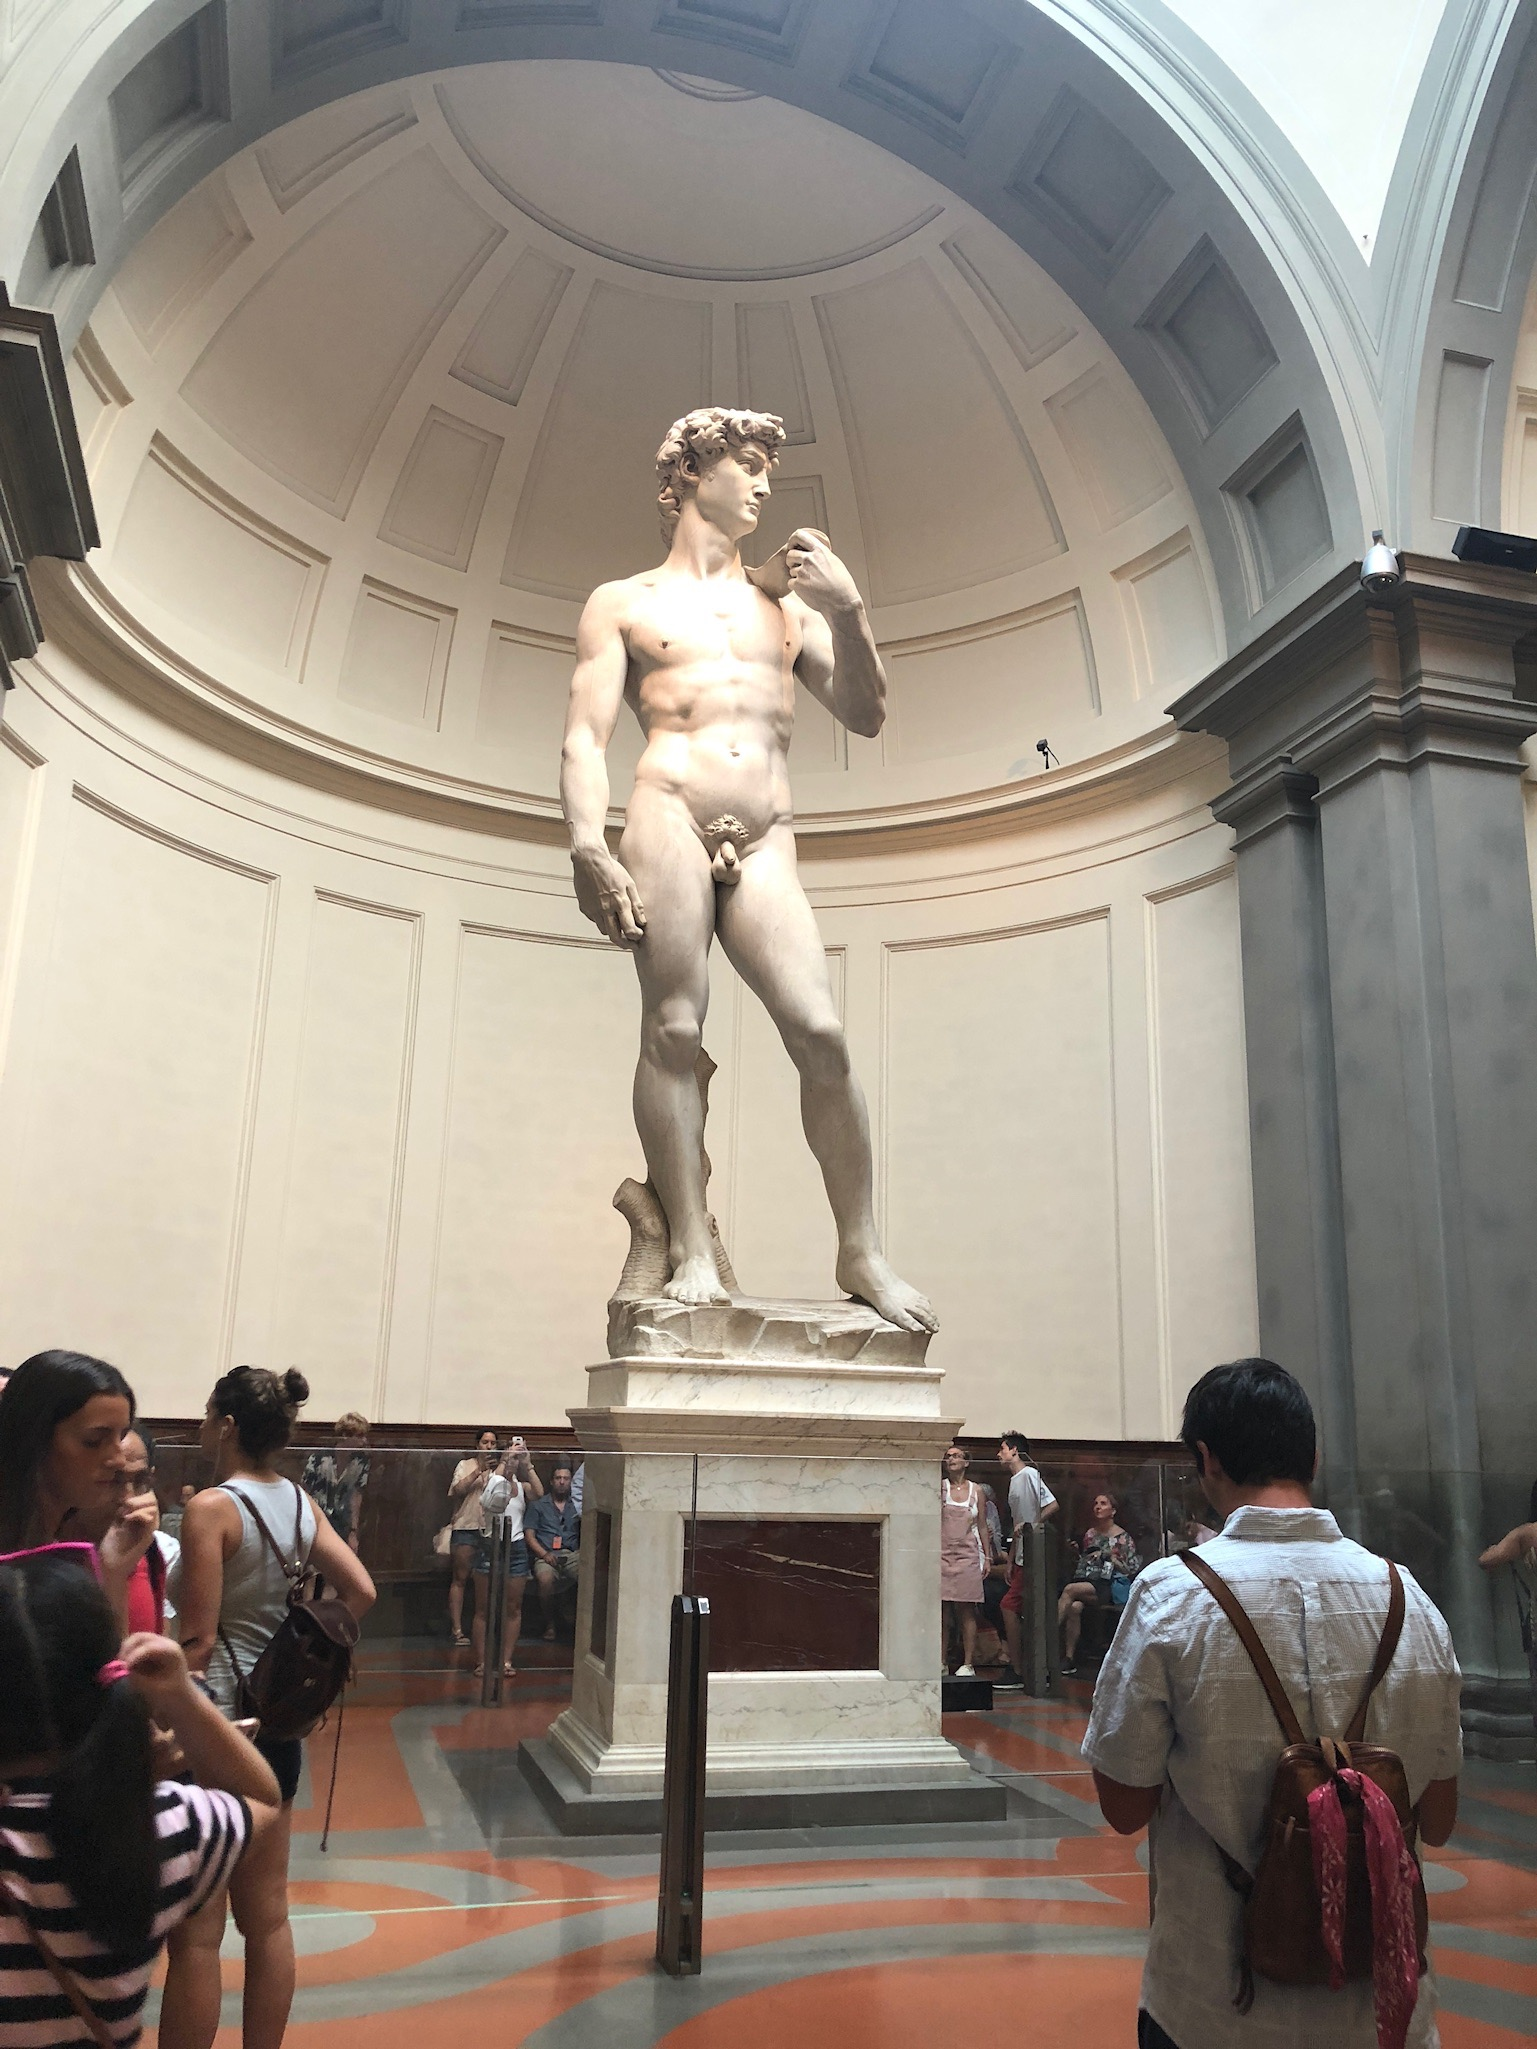 Michelangelo's David statue is made of marble and rests in the Accademia Gallery. Circa 1504, it is touted by some as the greatest masterpiece ever created by mankind. Michelangelo painted the ceiling of the Sistine Chapel years after sculpting The David.